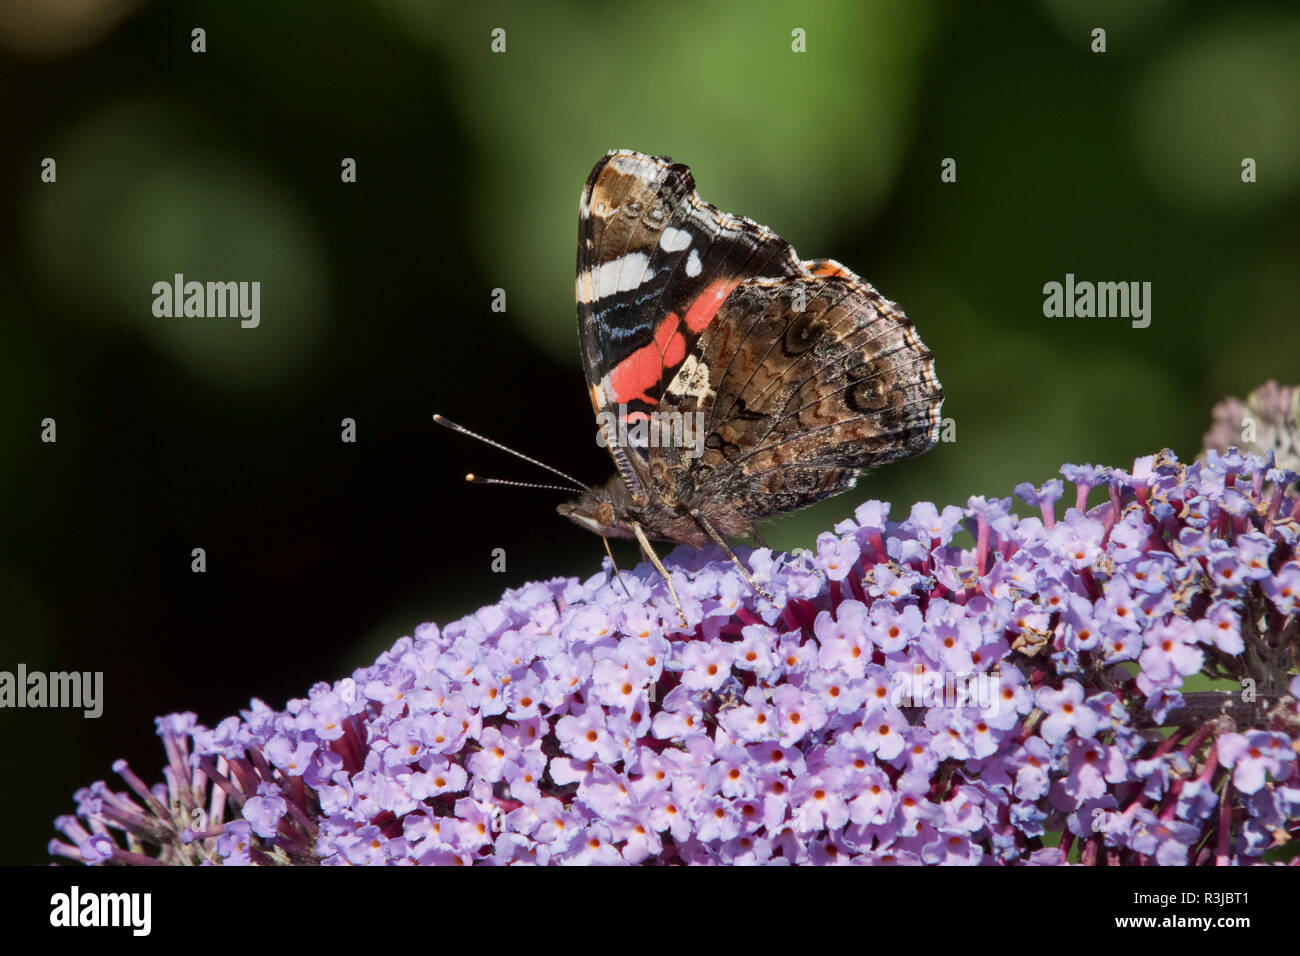 A red admiral butterfly, Vanessa atalanta, with wings closed nectar feeding on a Buddleia davidii, flower, August - Stock Image